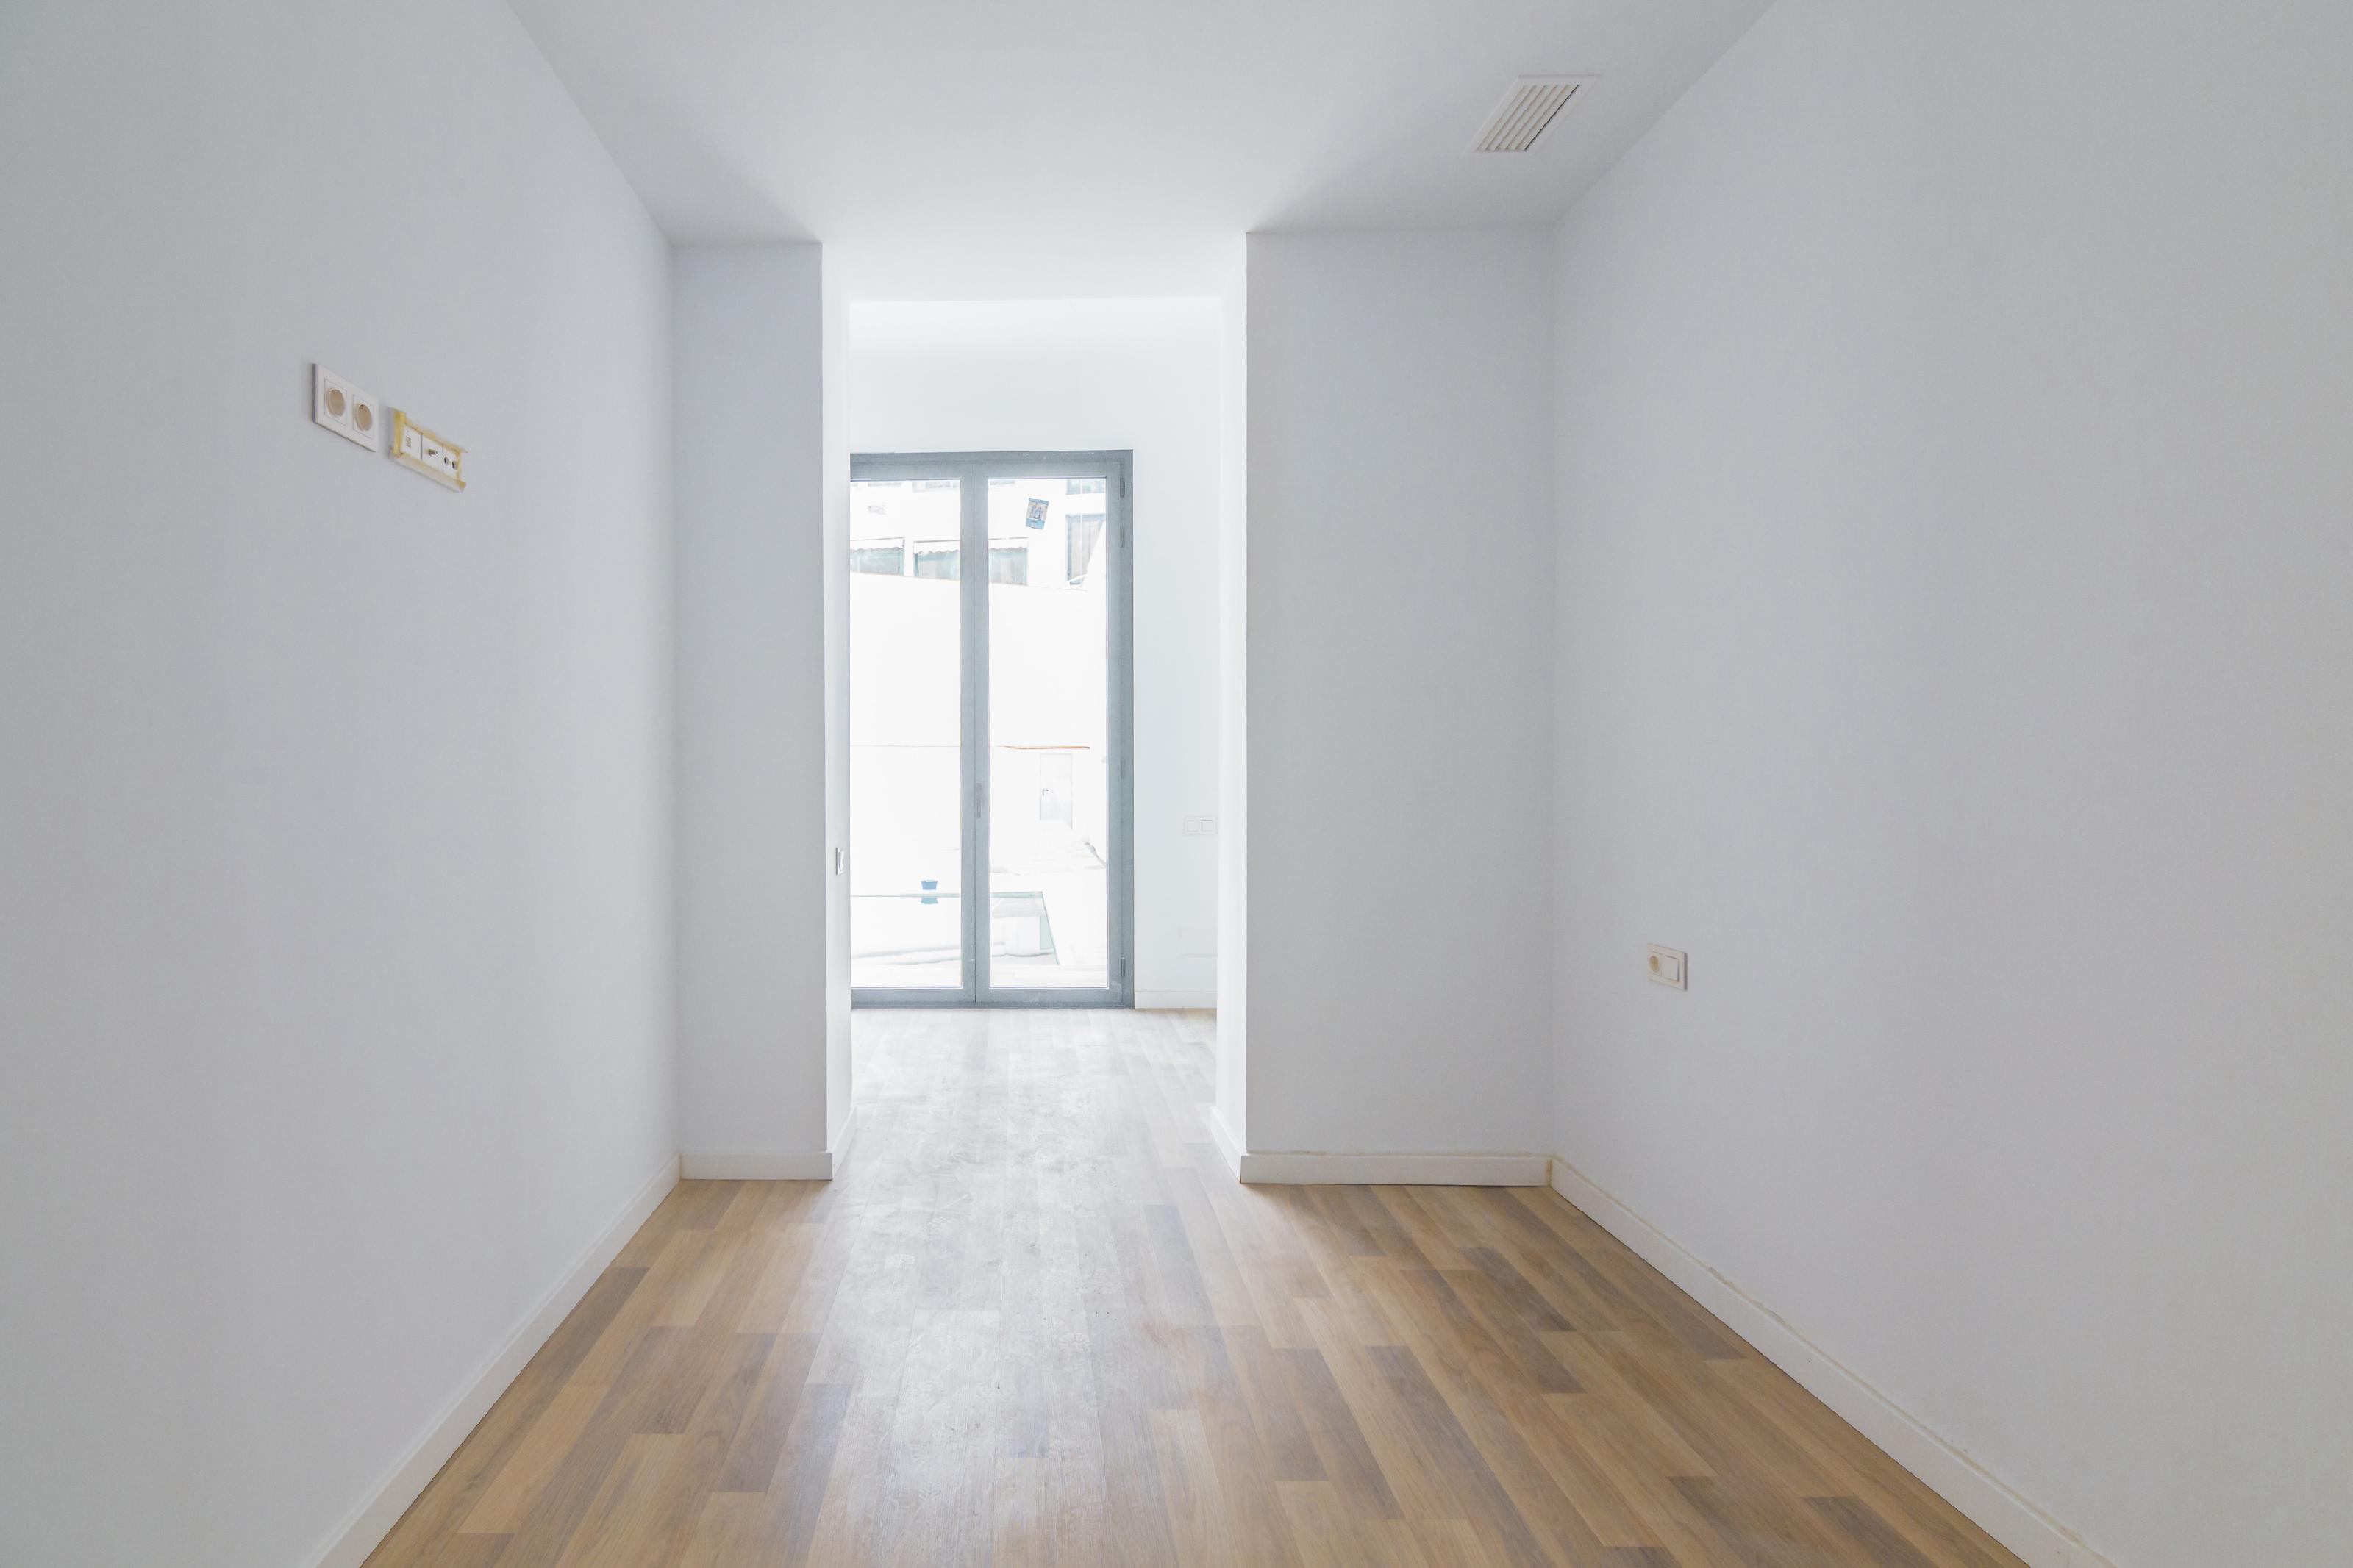 220650 Ground floor for sale in Sarrià-Sant Gervasi, Sant Gervasi-Galvany 7